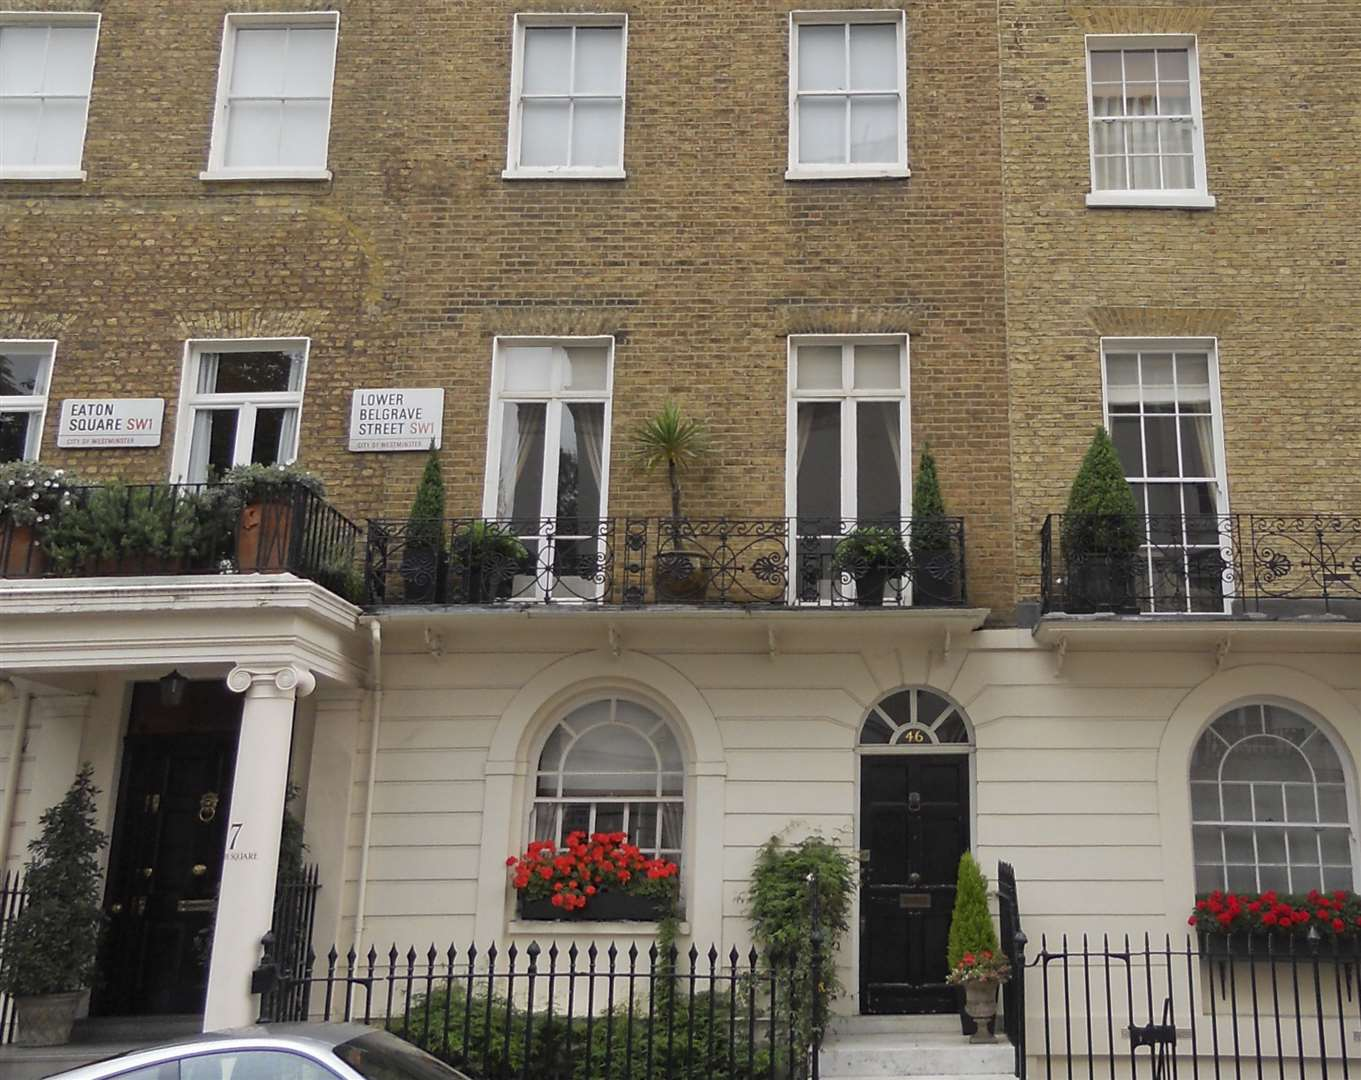 The Belgravia home where Sandra Rivett was murdered